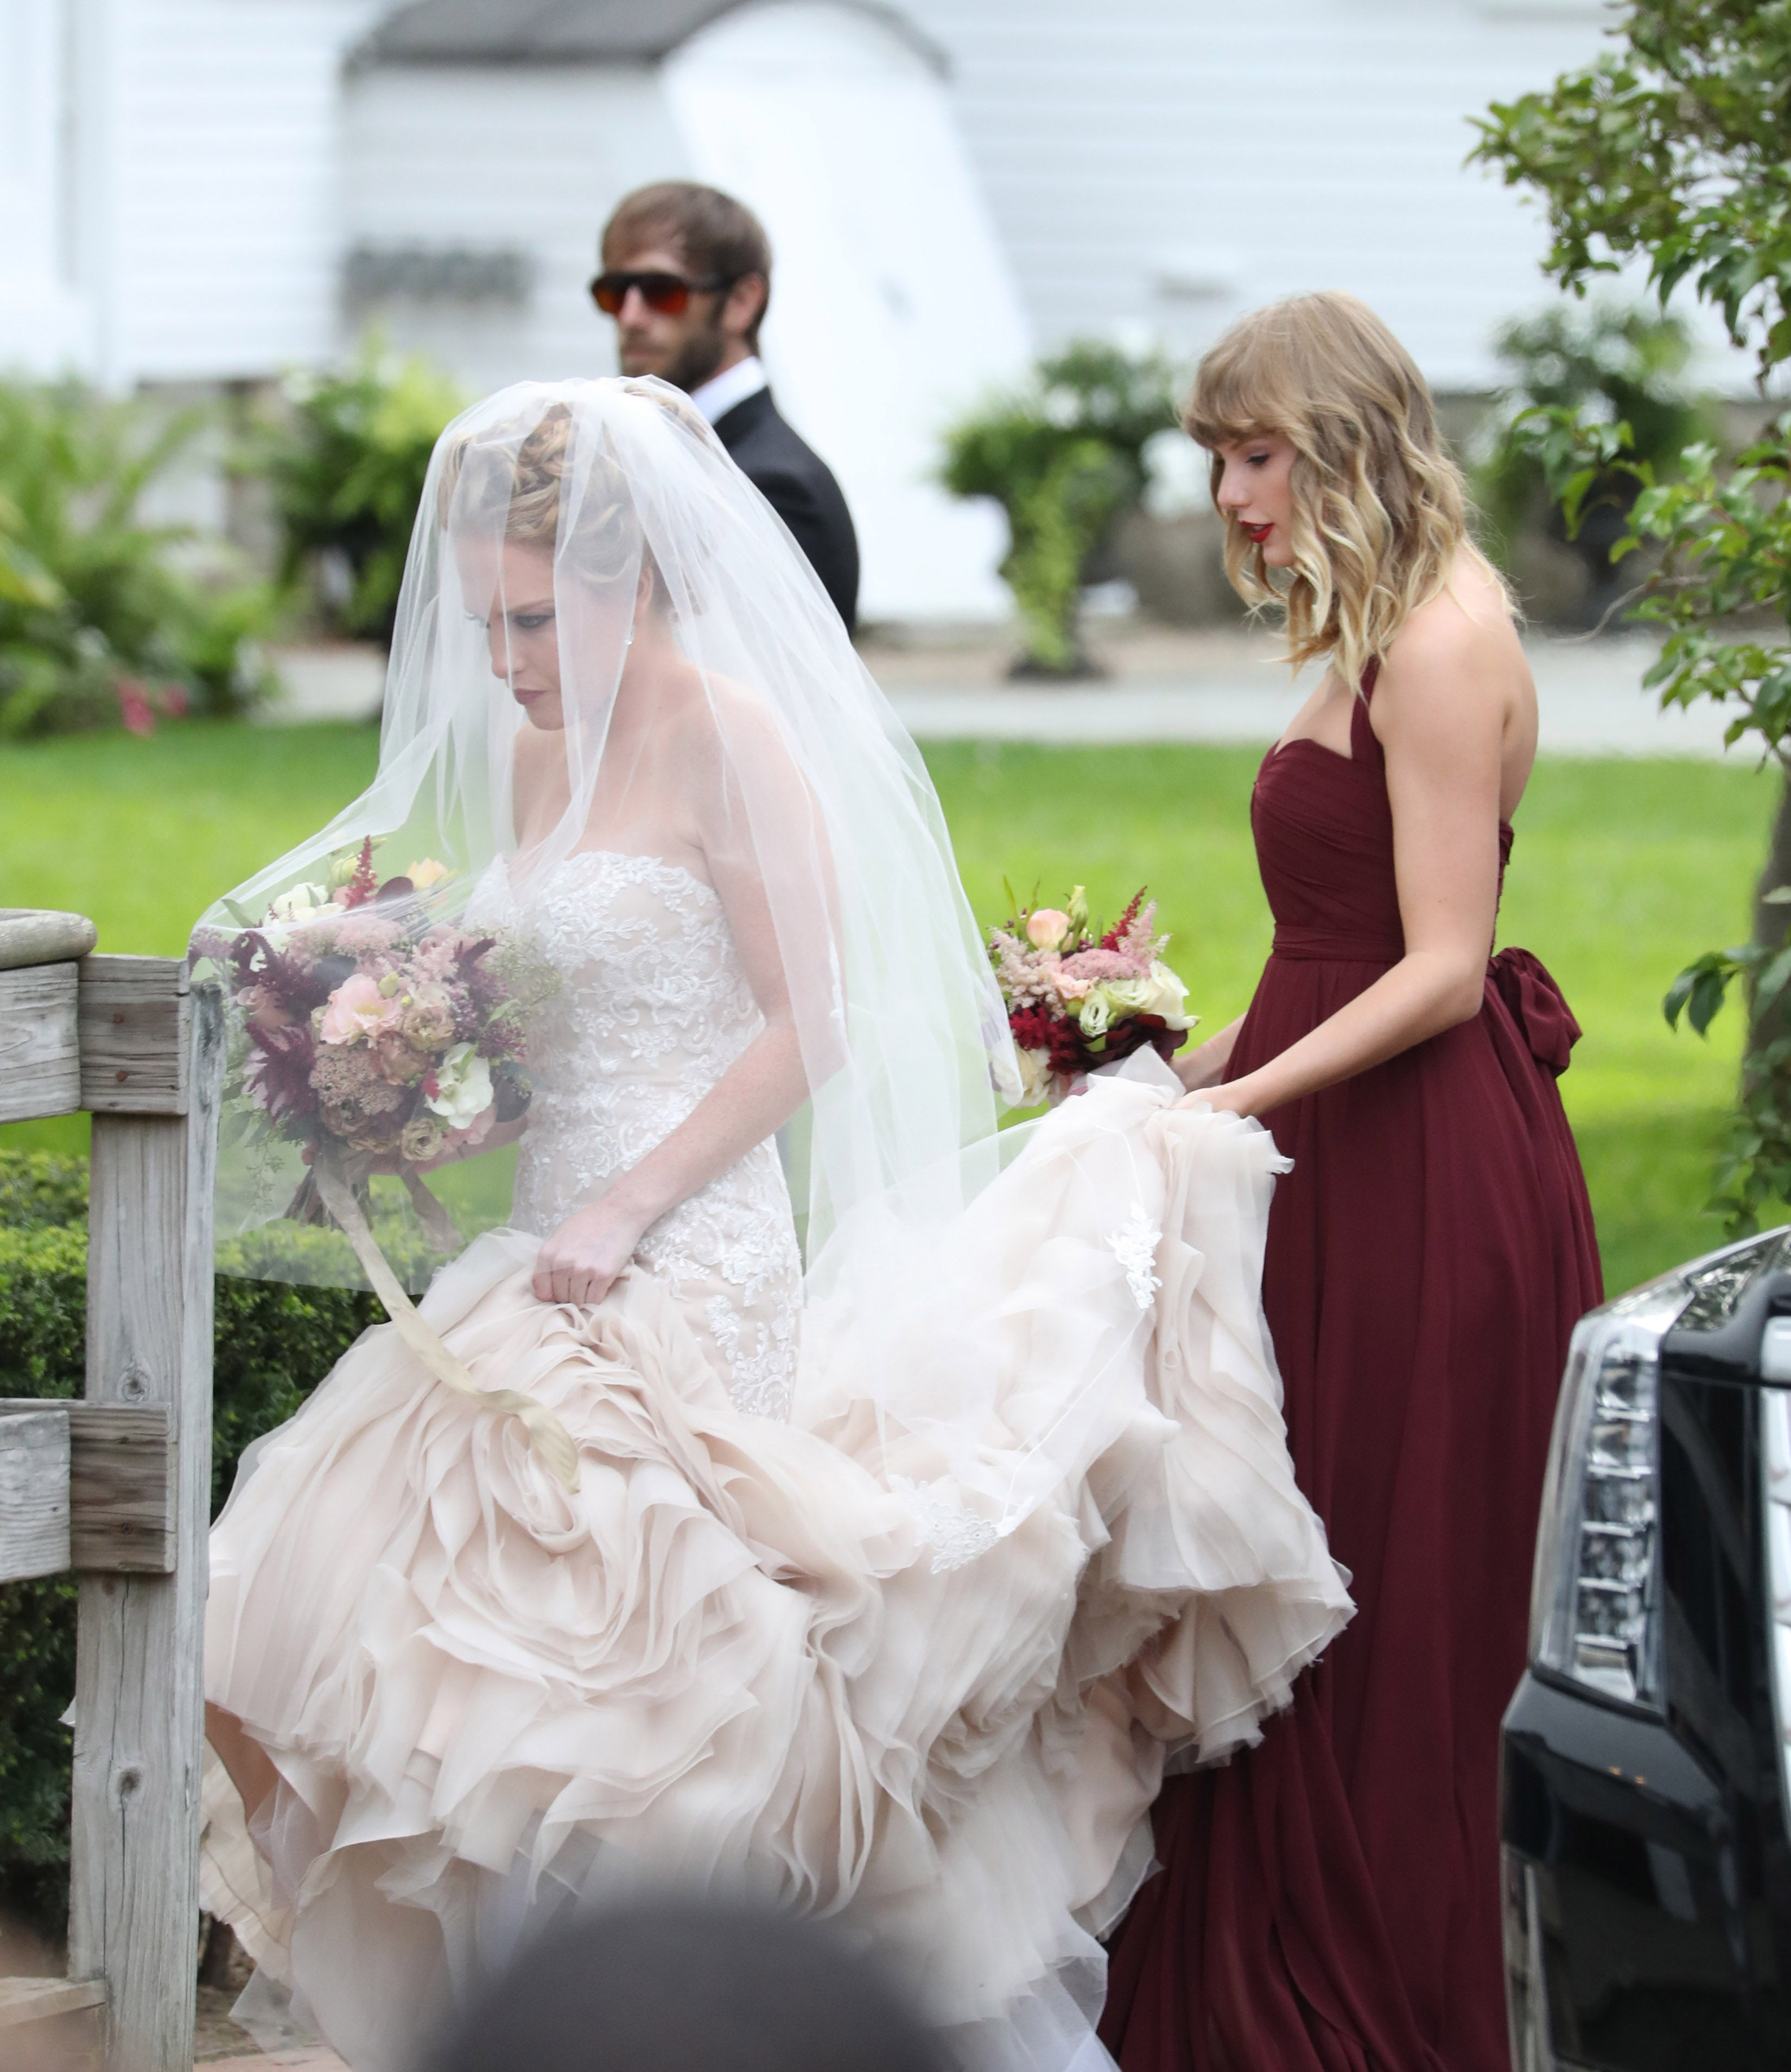 Taylor Swift Looks Stunning As A Bridesmaid For BFF Abigail Andersons Wedding See The Pics